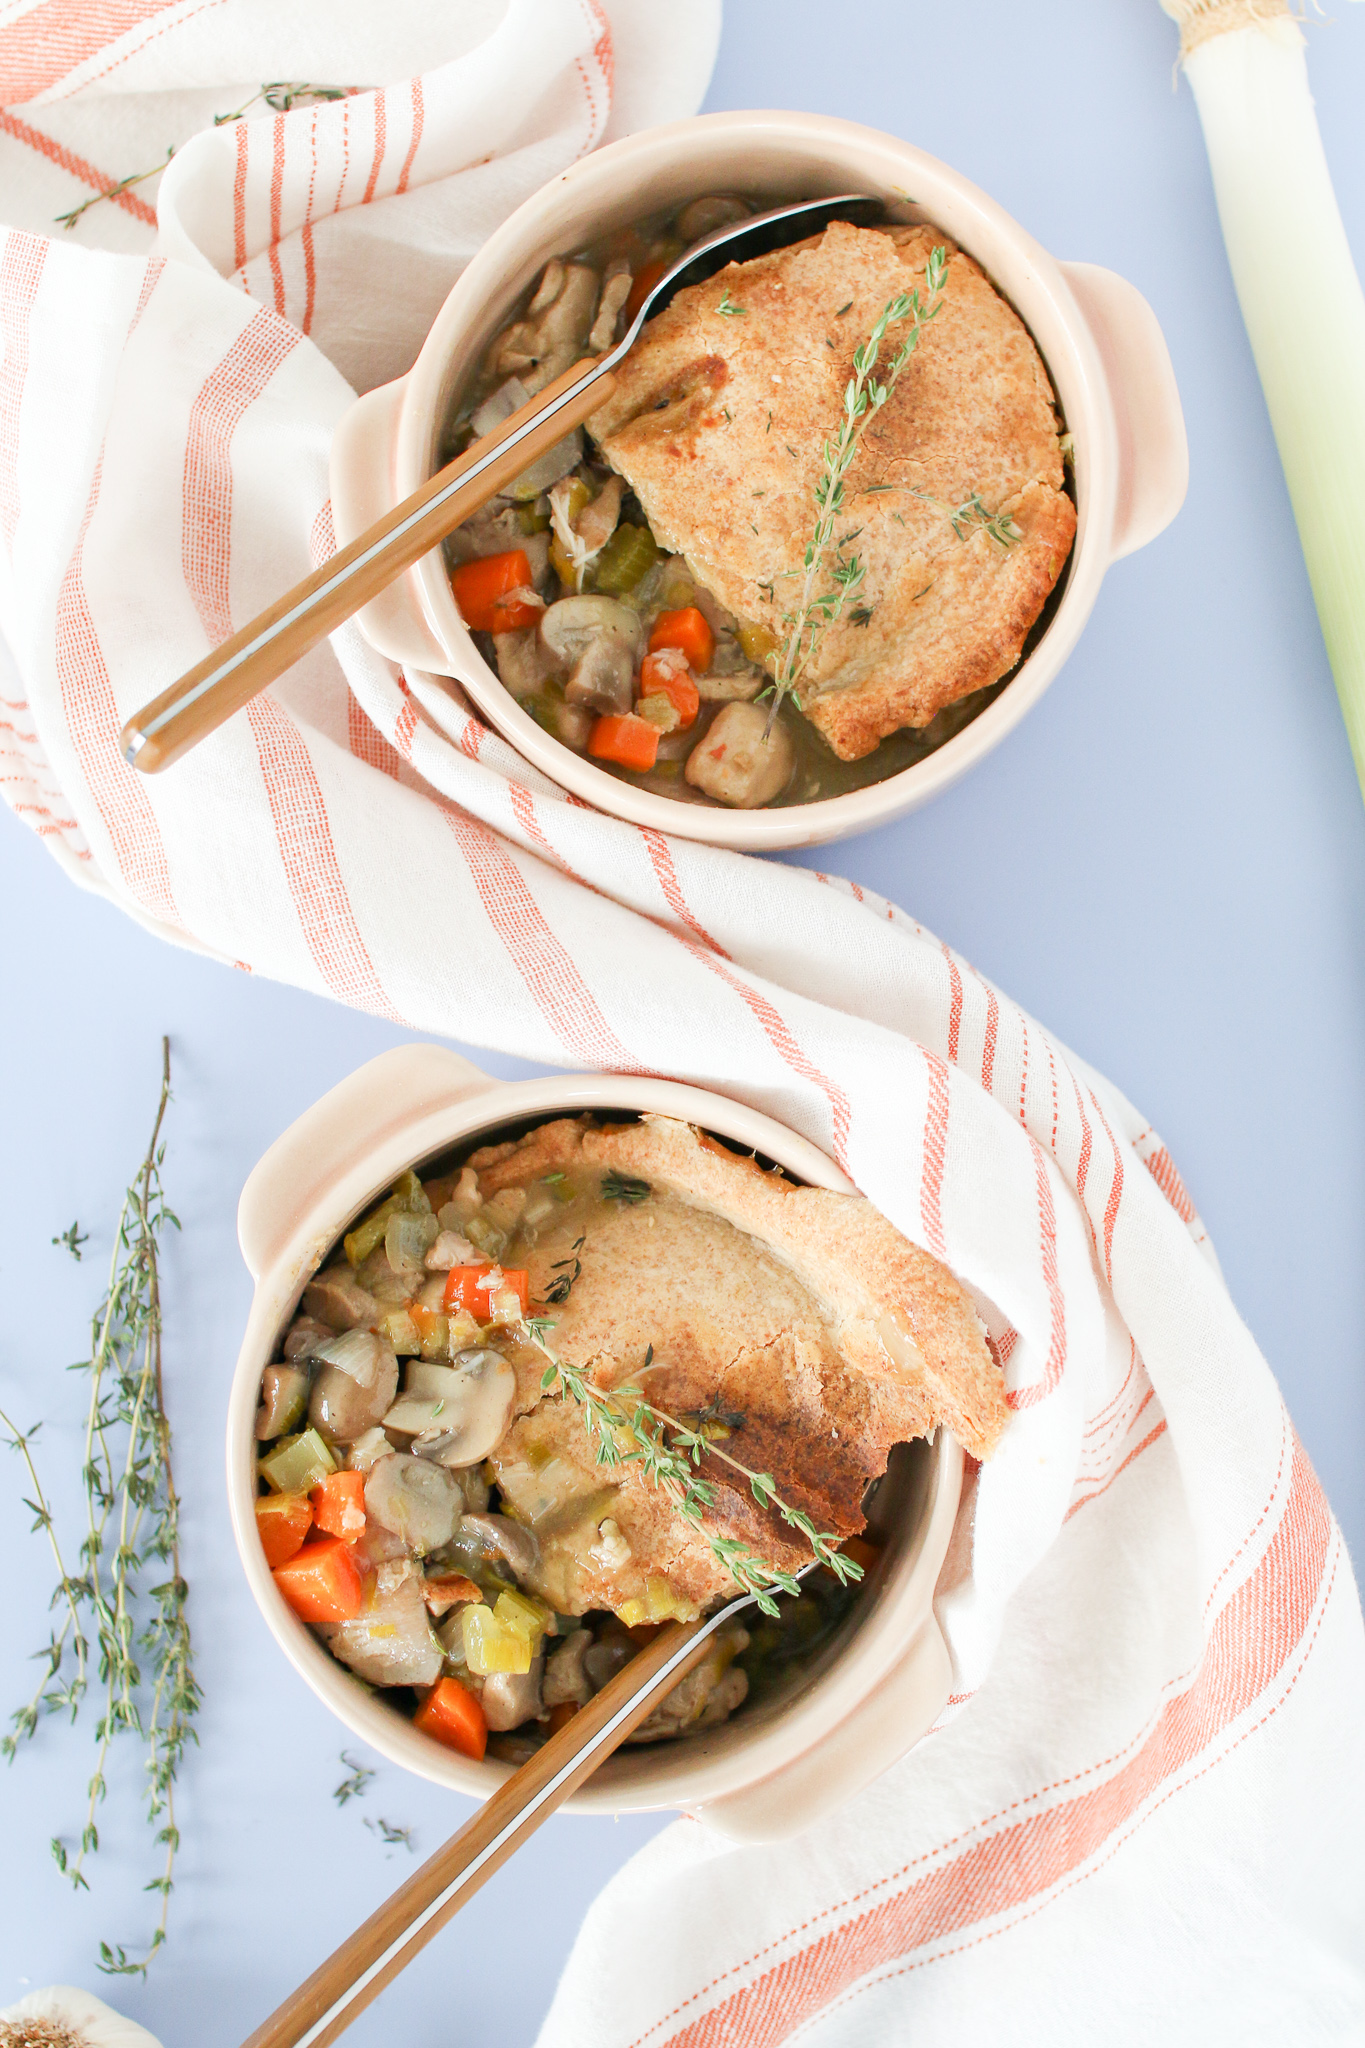 This seriously delicious homemade chicken pot pie loaded with mushrooms and leeks, topped with a flaky spelt flour pastry and fresh thyme, is the perfect comforting meal to enjoy on a cold and wintry night.